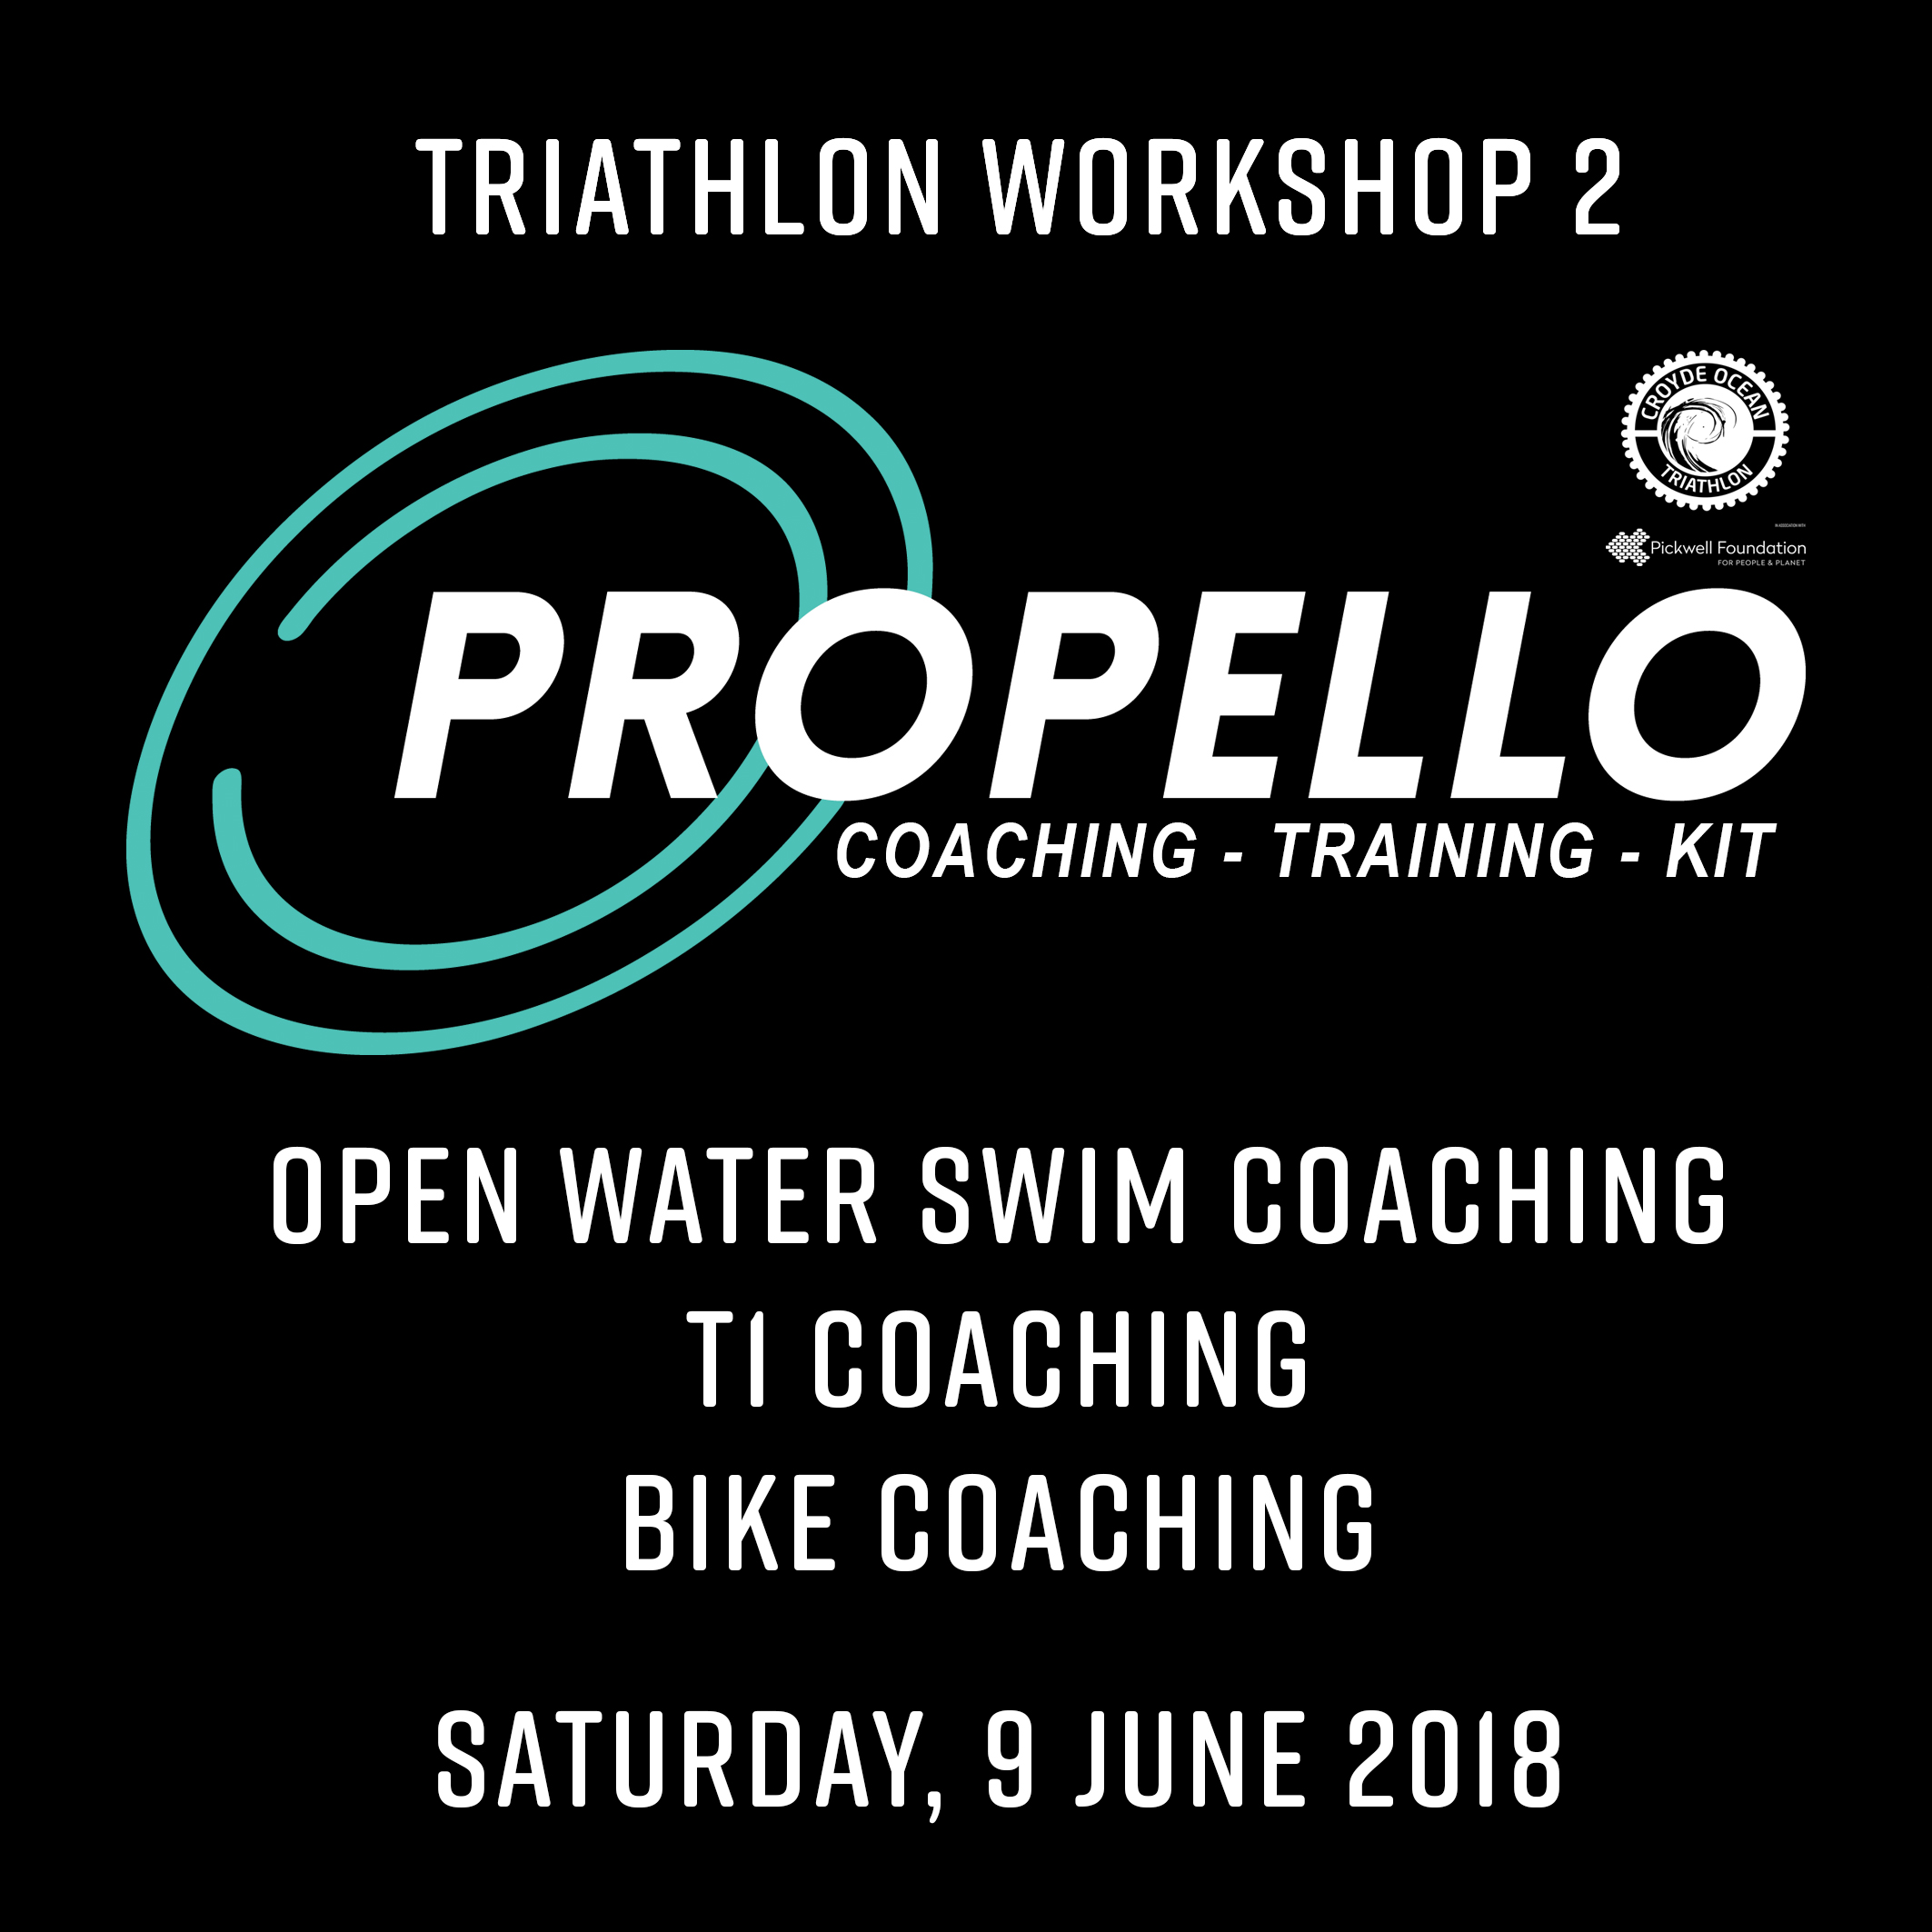 Tri Workshop 2 (09.06.2018): Open water swim – T1 – bike coaching